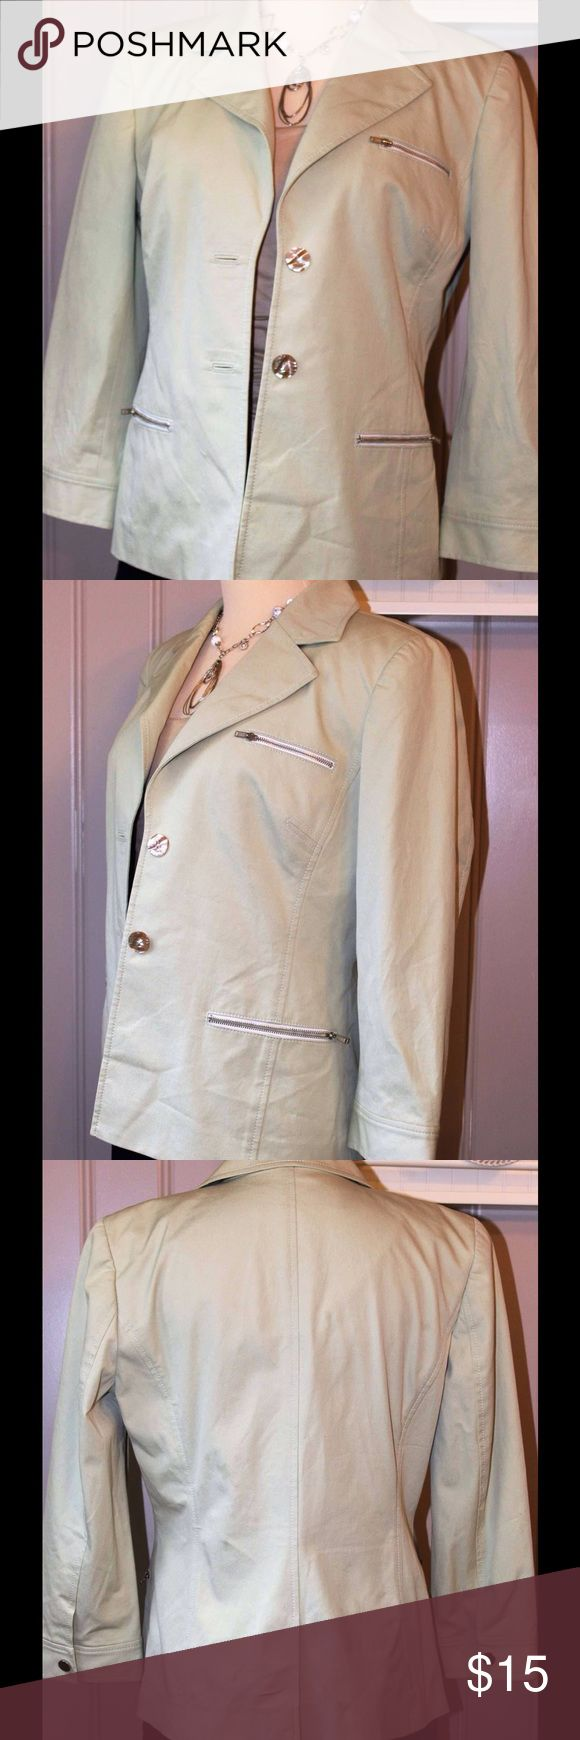 Zipper jacket, w/ 3/4 sleeves This little light chartreuse colored jacket, is very trendy with out zipper pockets and the oversized shell  buttons.  Has a little stretch and light weight.  A cute little jacket for the office or everyday. Doncaster Jackets & Coats Blazers